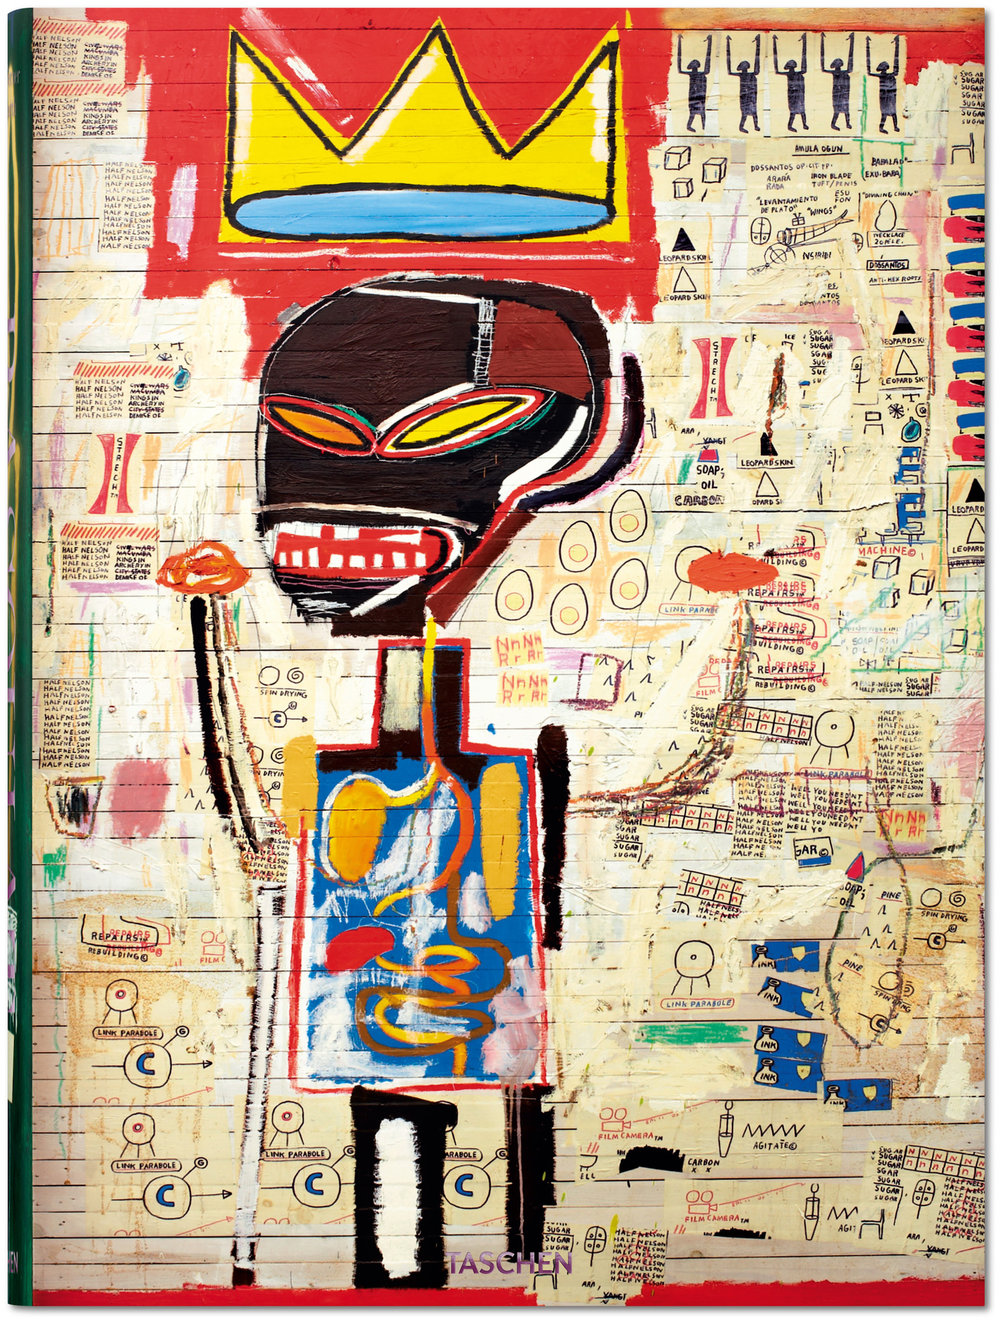 abe3732eb027 Contemporary Art Curator Magazine. The Life and Works of Jean-Michel  Basquiat I New Book From TASCHEN